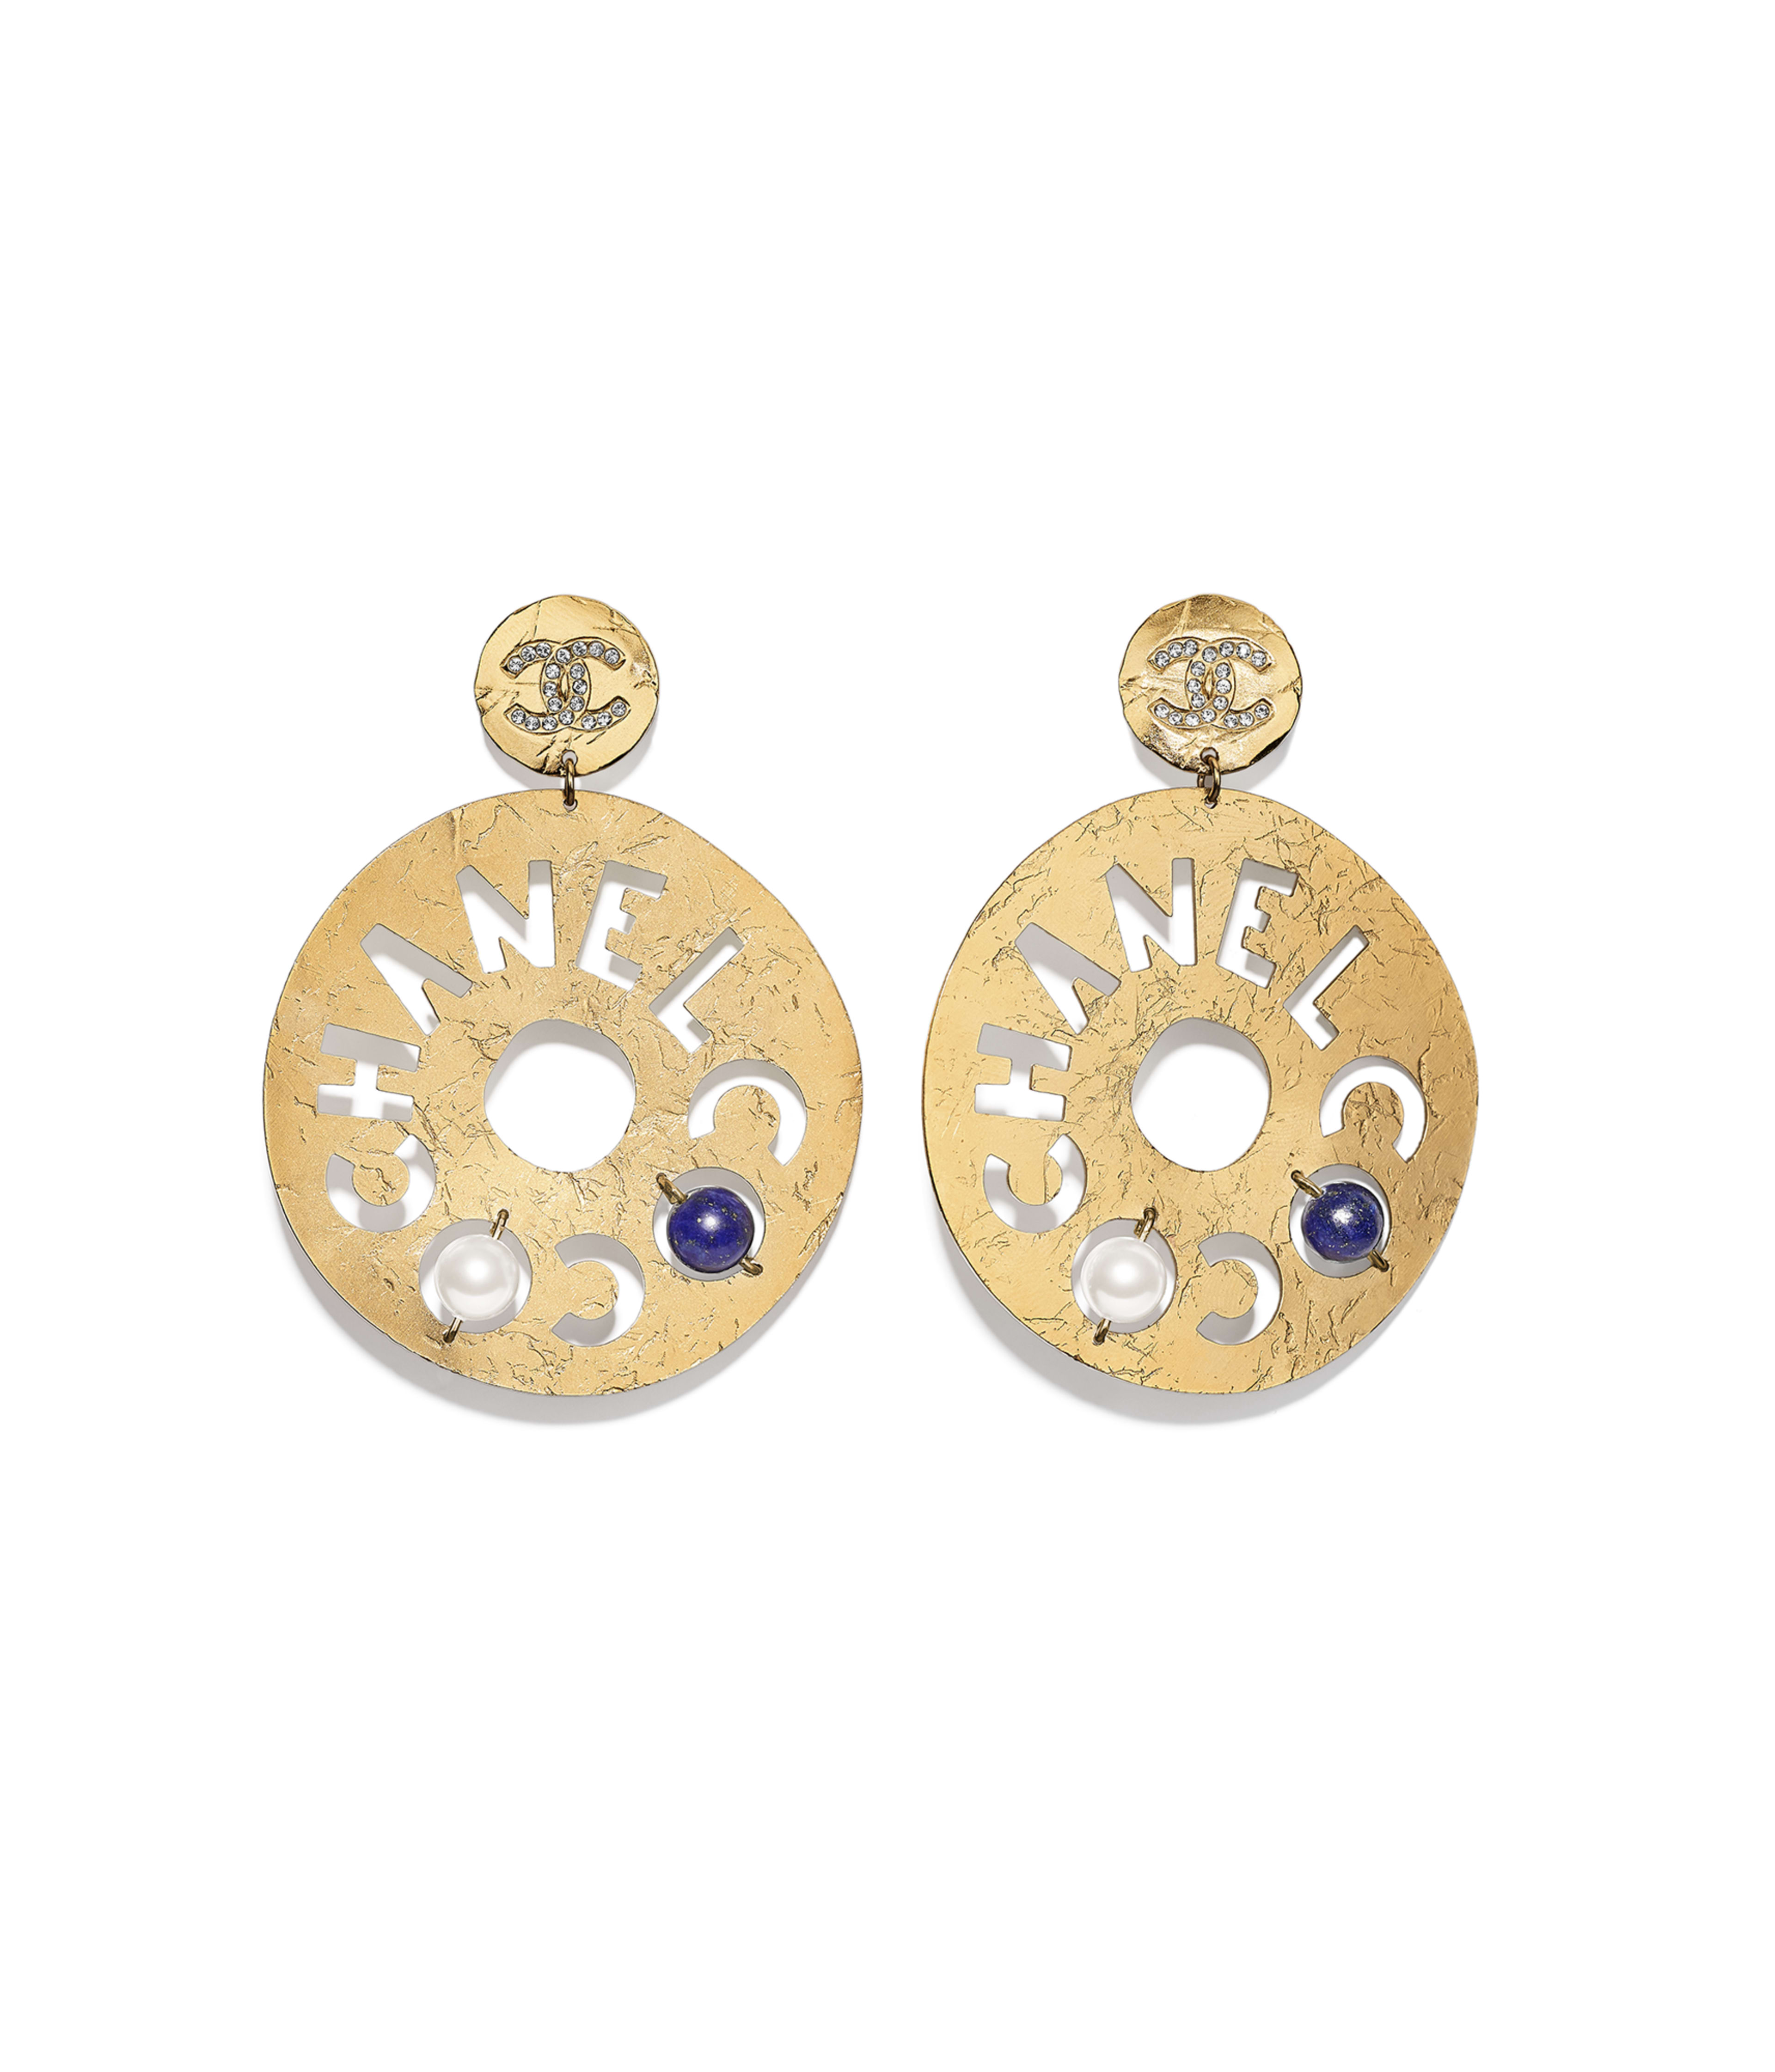 cca98ba7e281 Clip-on Earrings Metal, Natural Stones, Glass Pearls & Strass, Gold, Pearly  White, Blue & Crystal Ref. AB1602Y47711Z9127